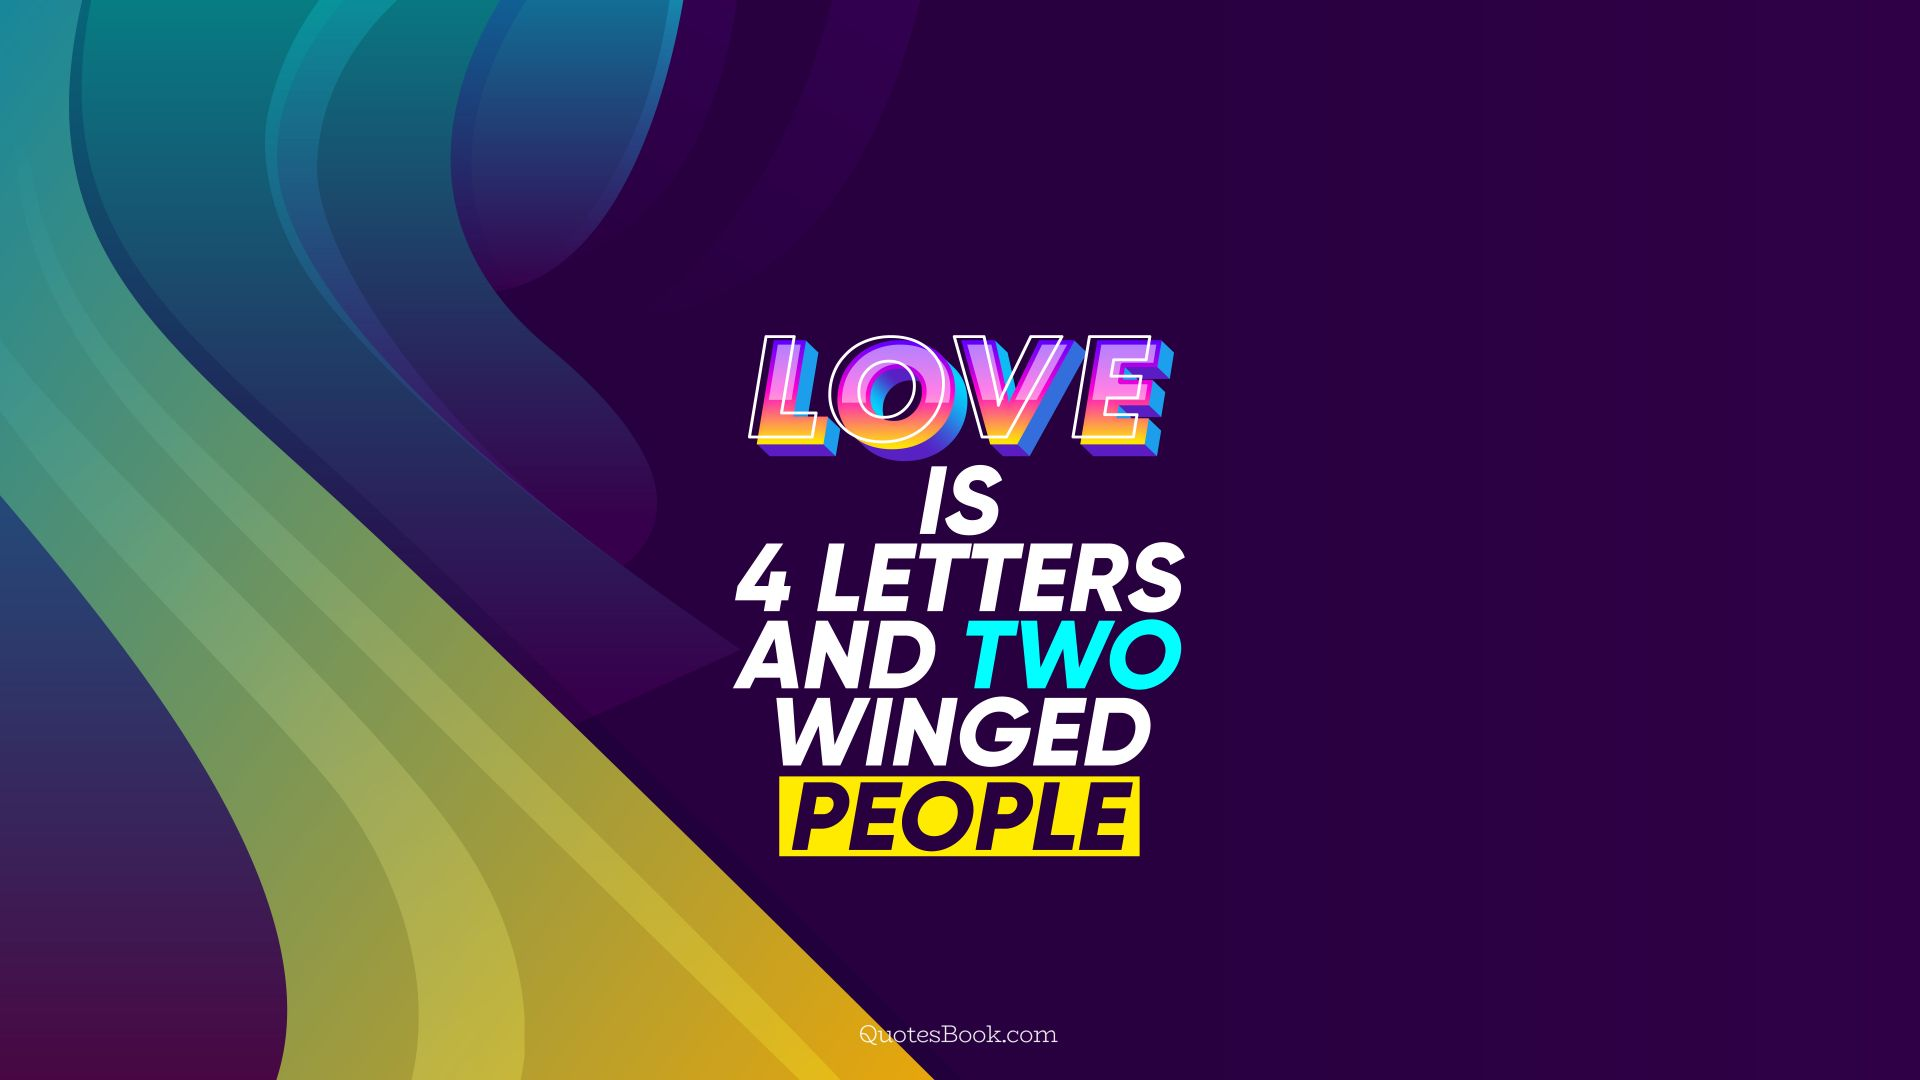 Love is 4 letters and two winged people. - Quote by QuotesBook